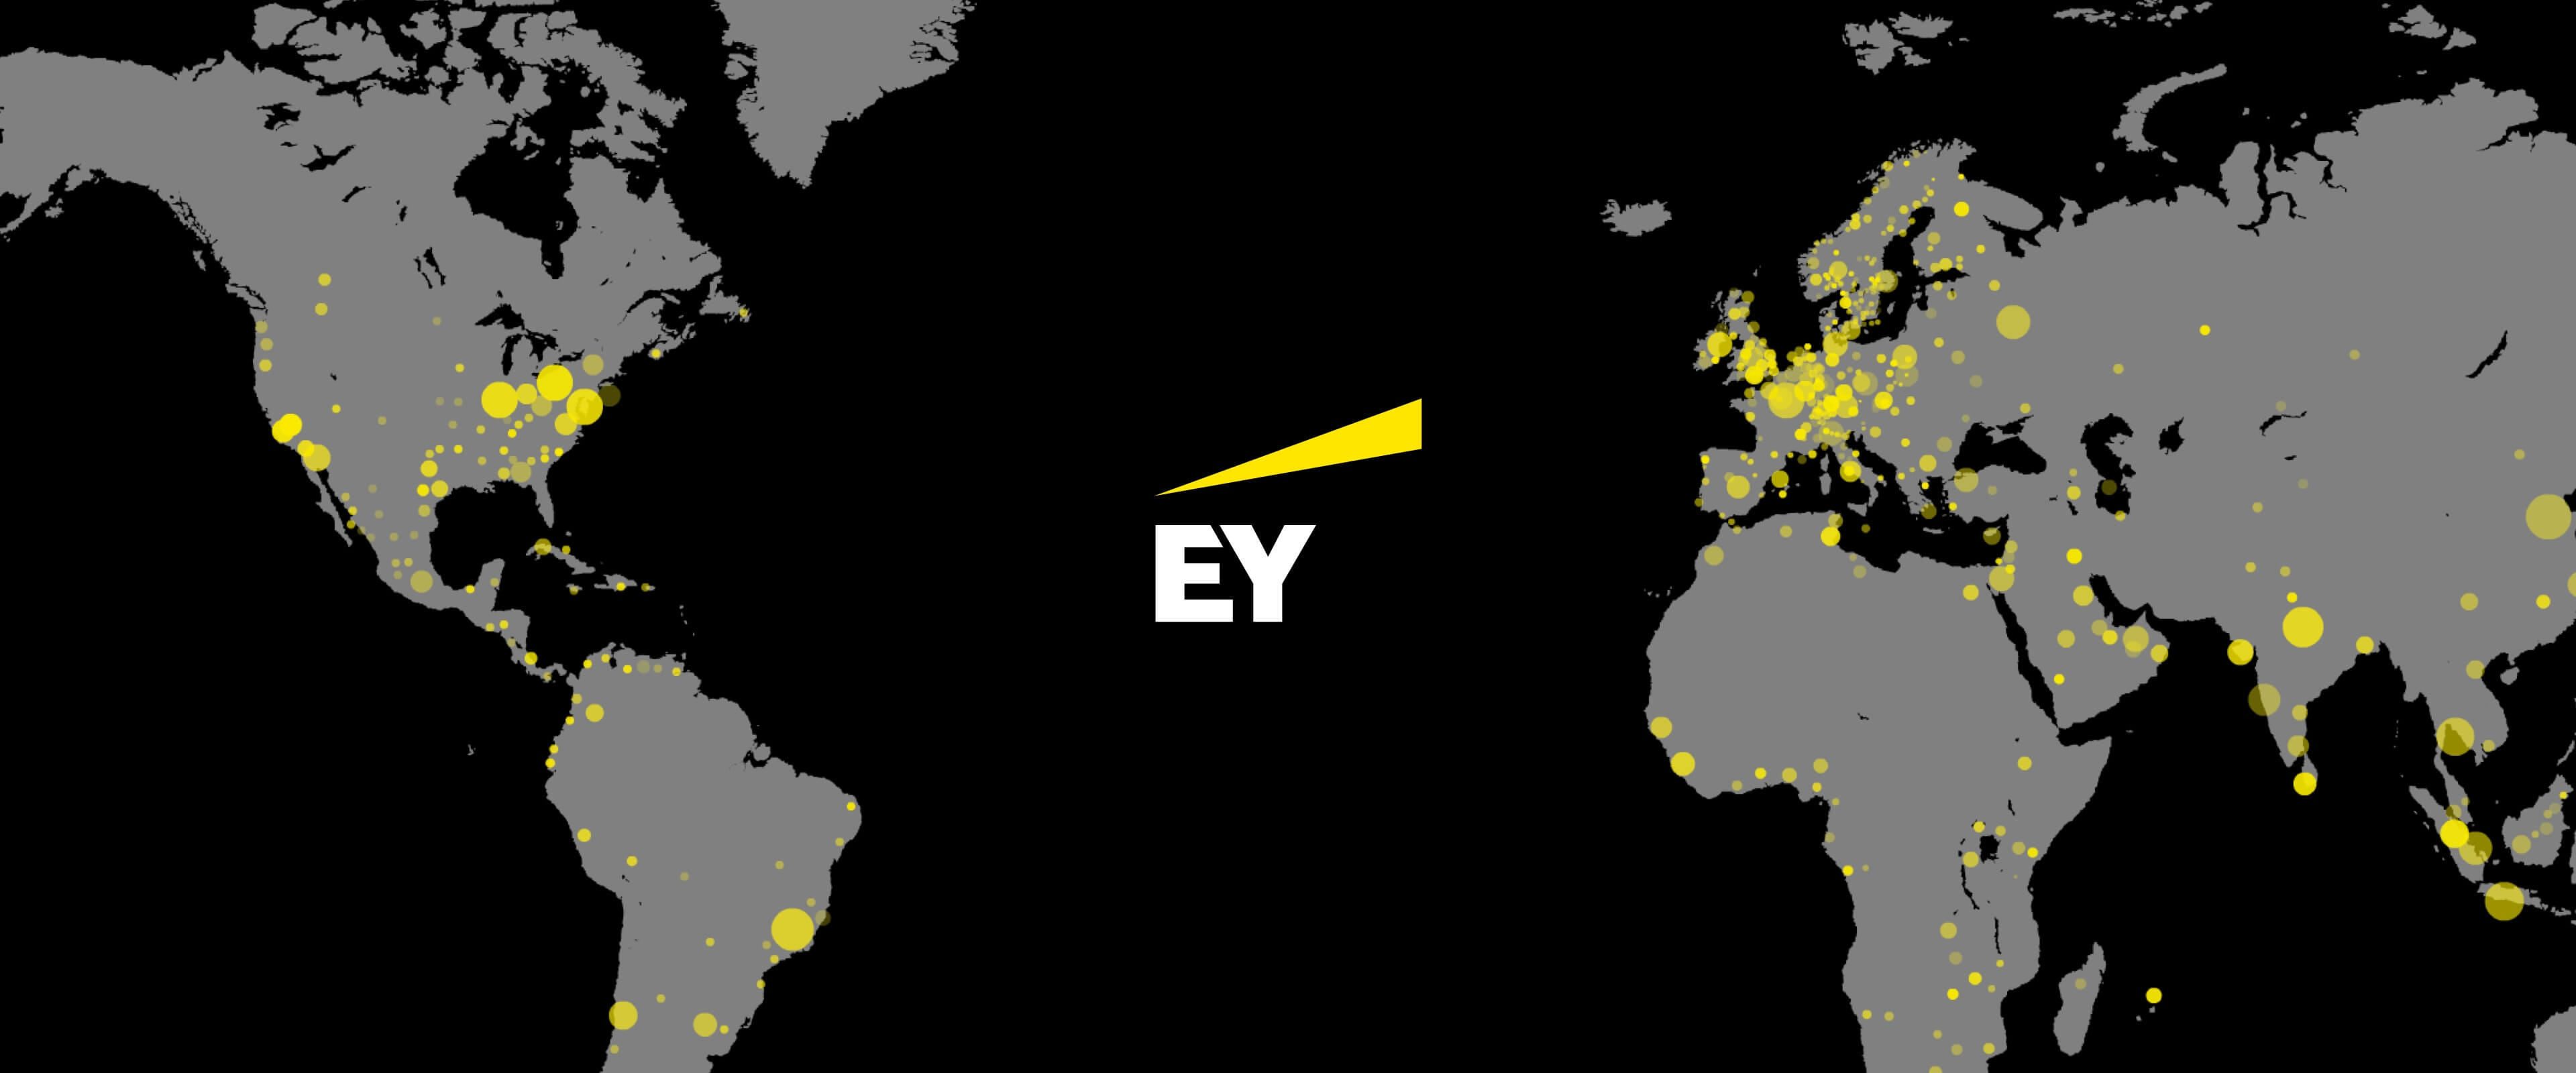 Philip_Mawer_Ernst_Young_Header